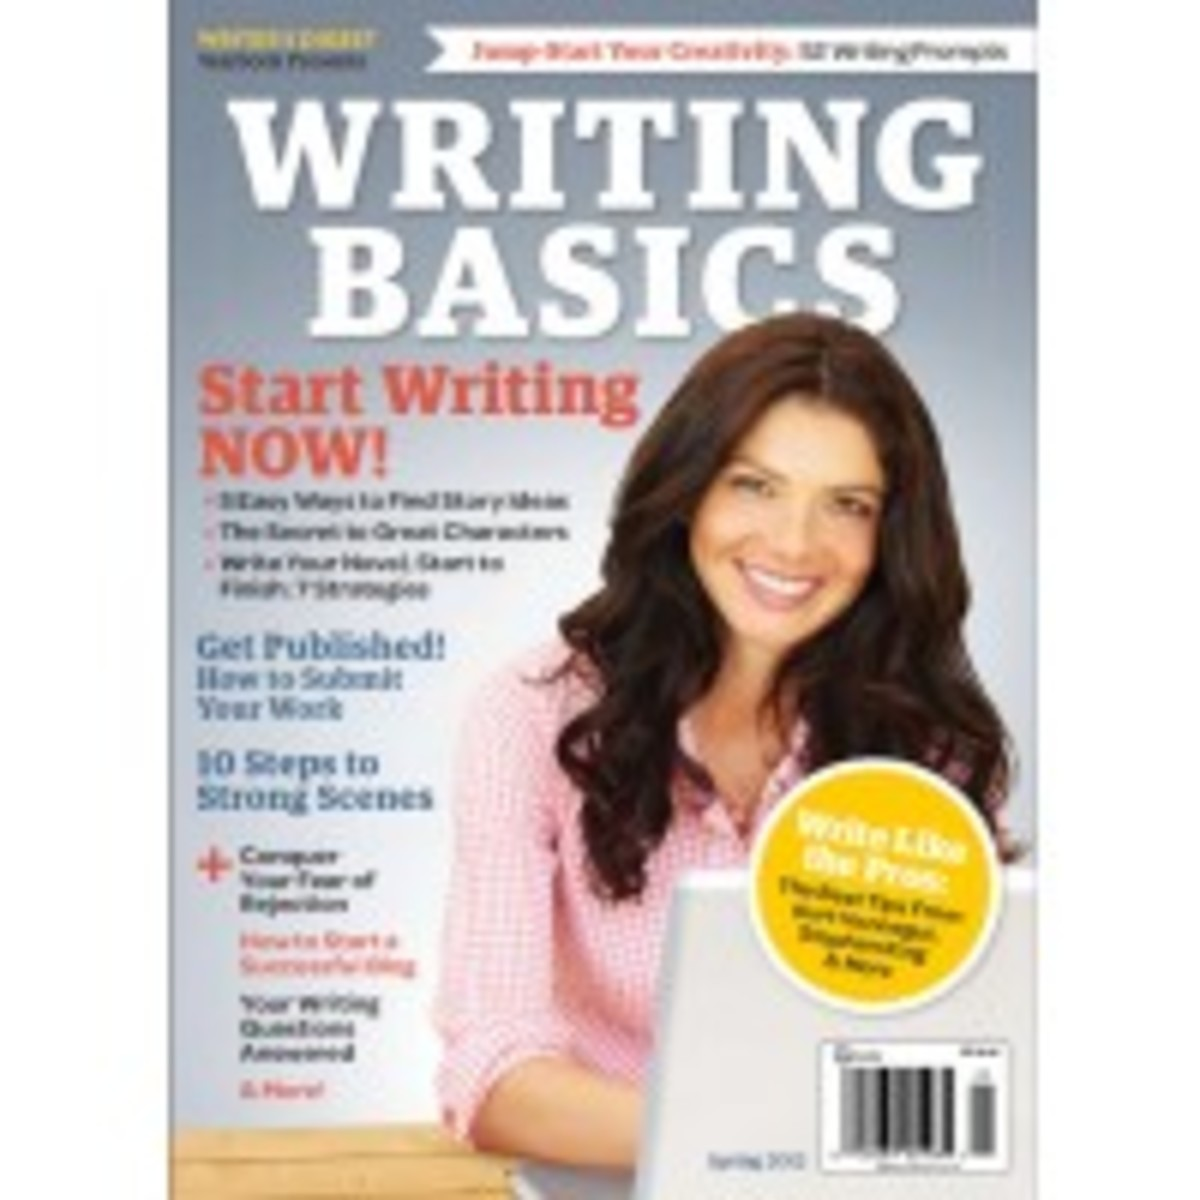 Writing Basics 2012